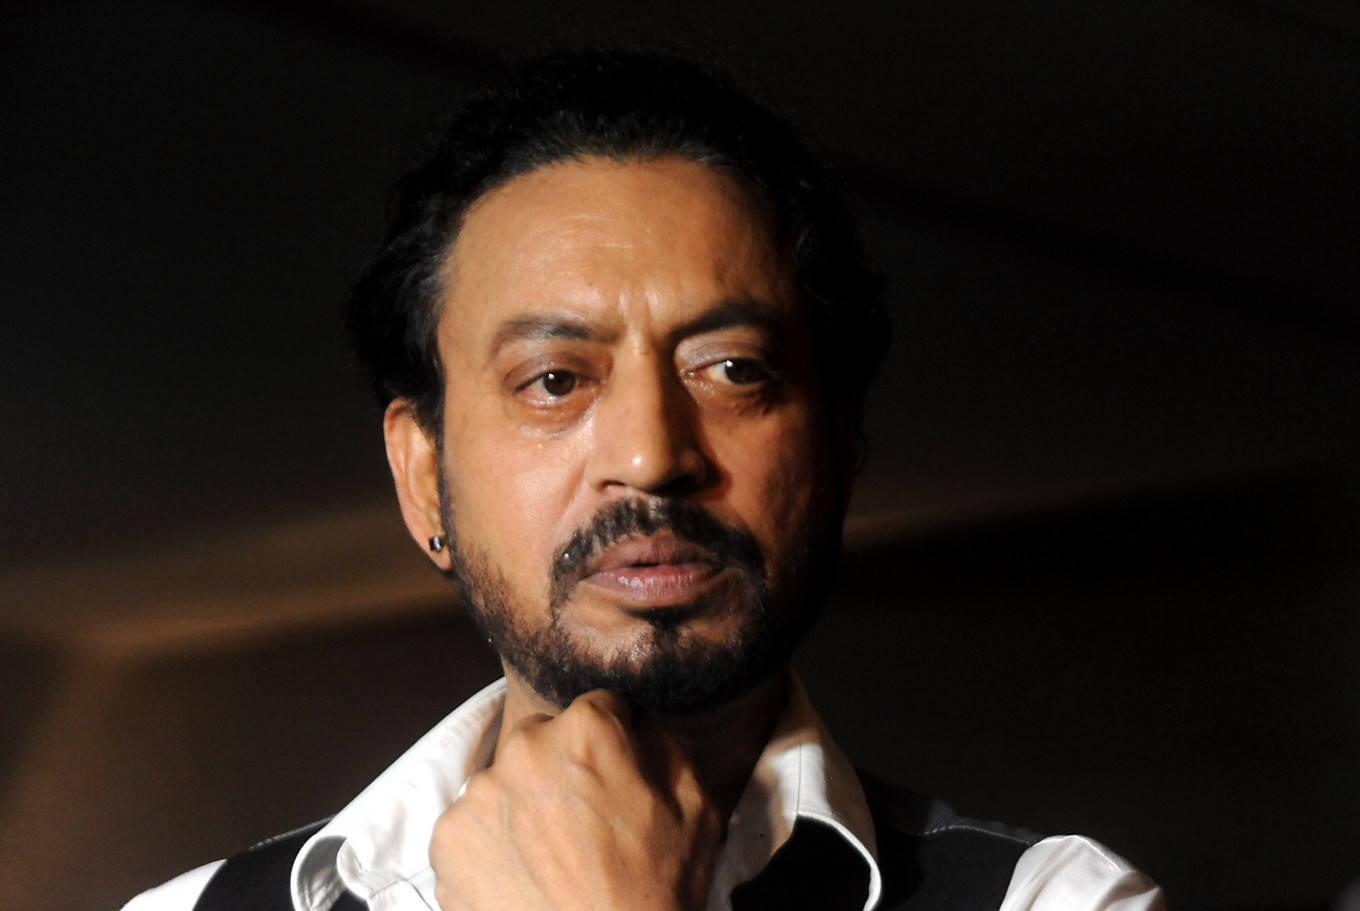 Life Of Pi And Slumdog Millionaire Star Irrfan Khan Has Died